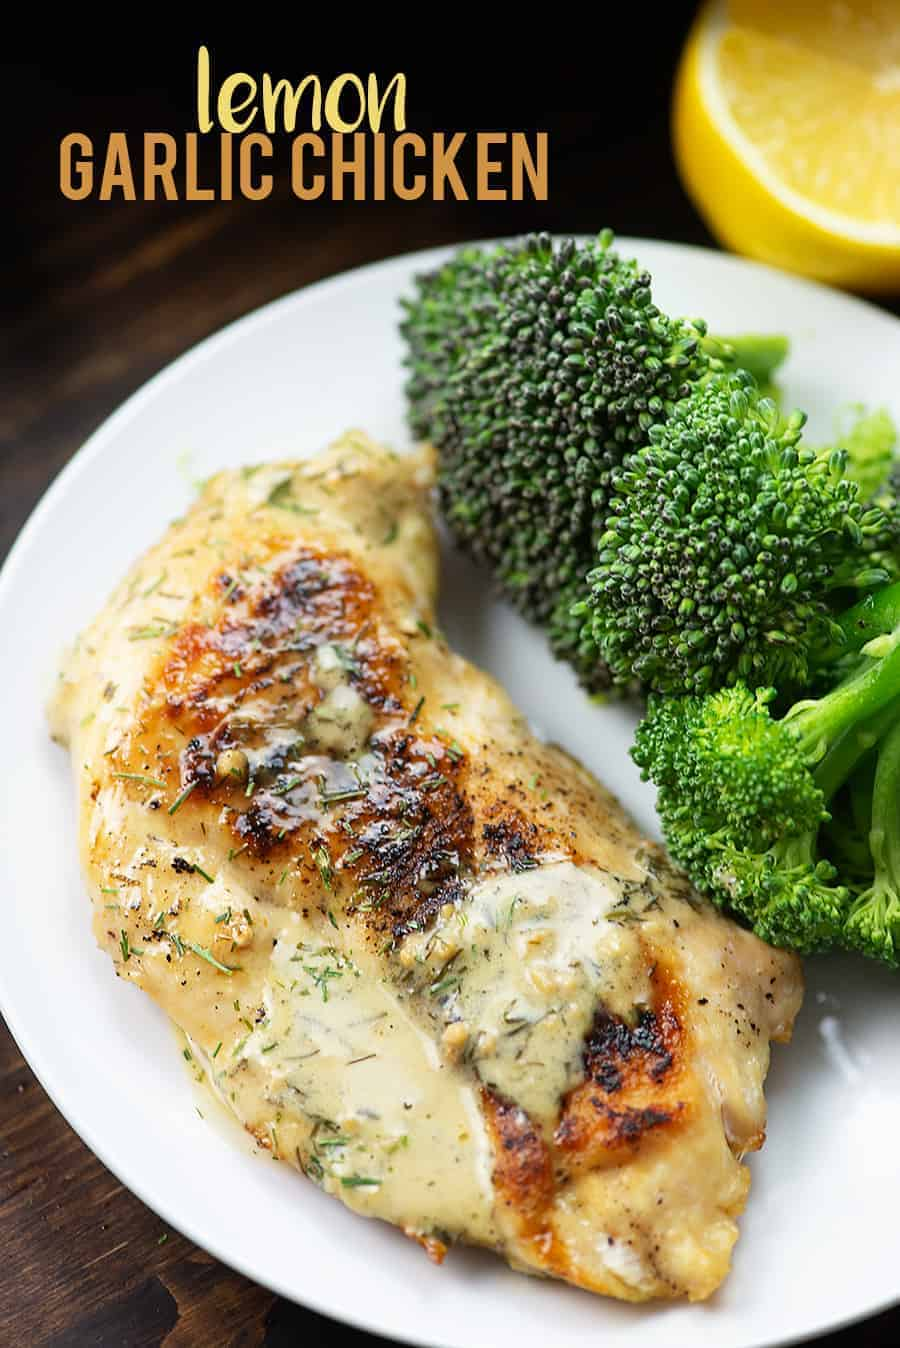 A plate of lemon chicken next to large broccoli pieces